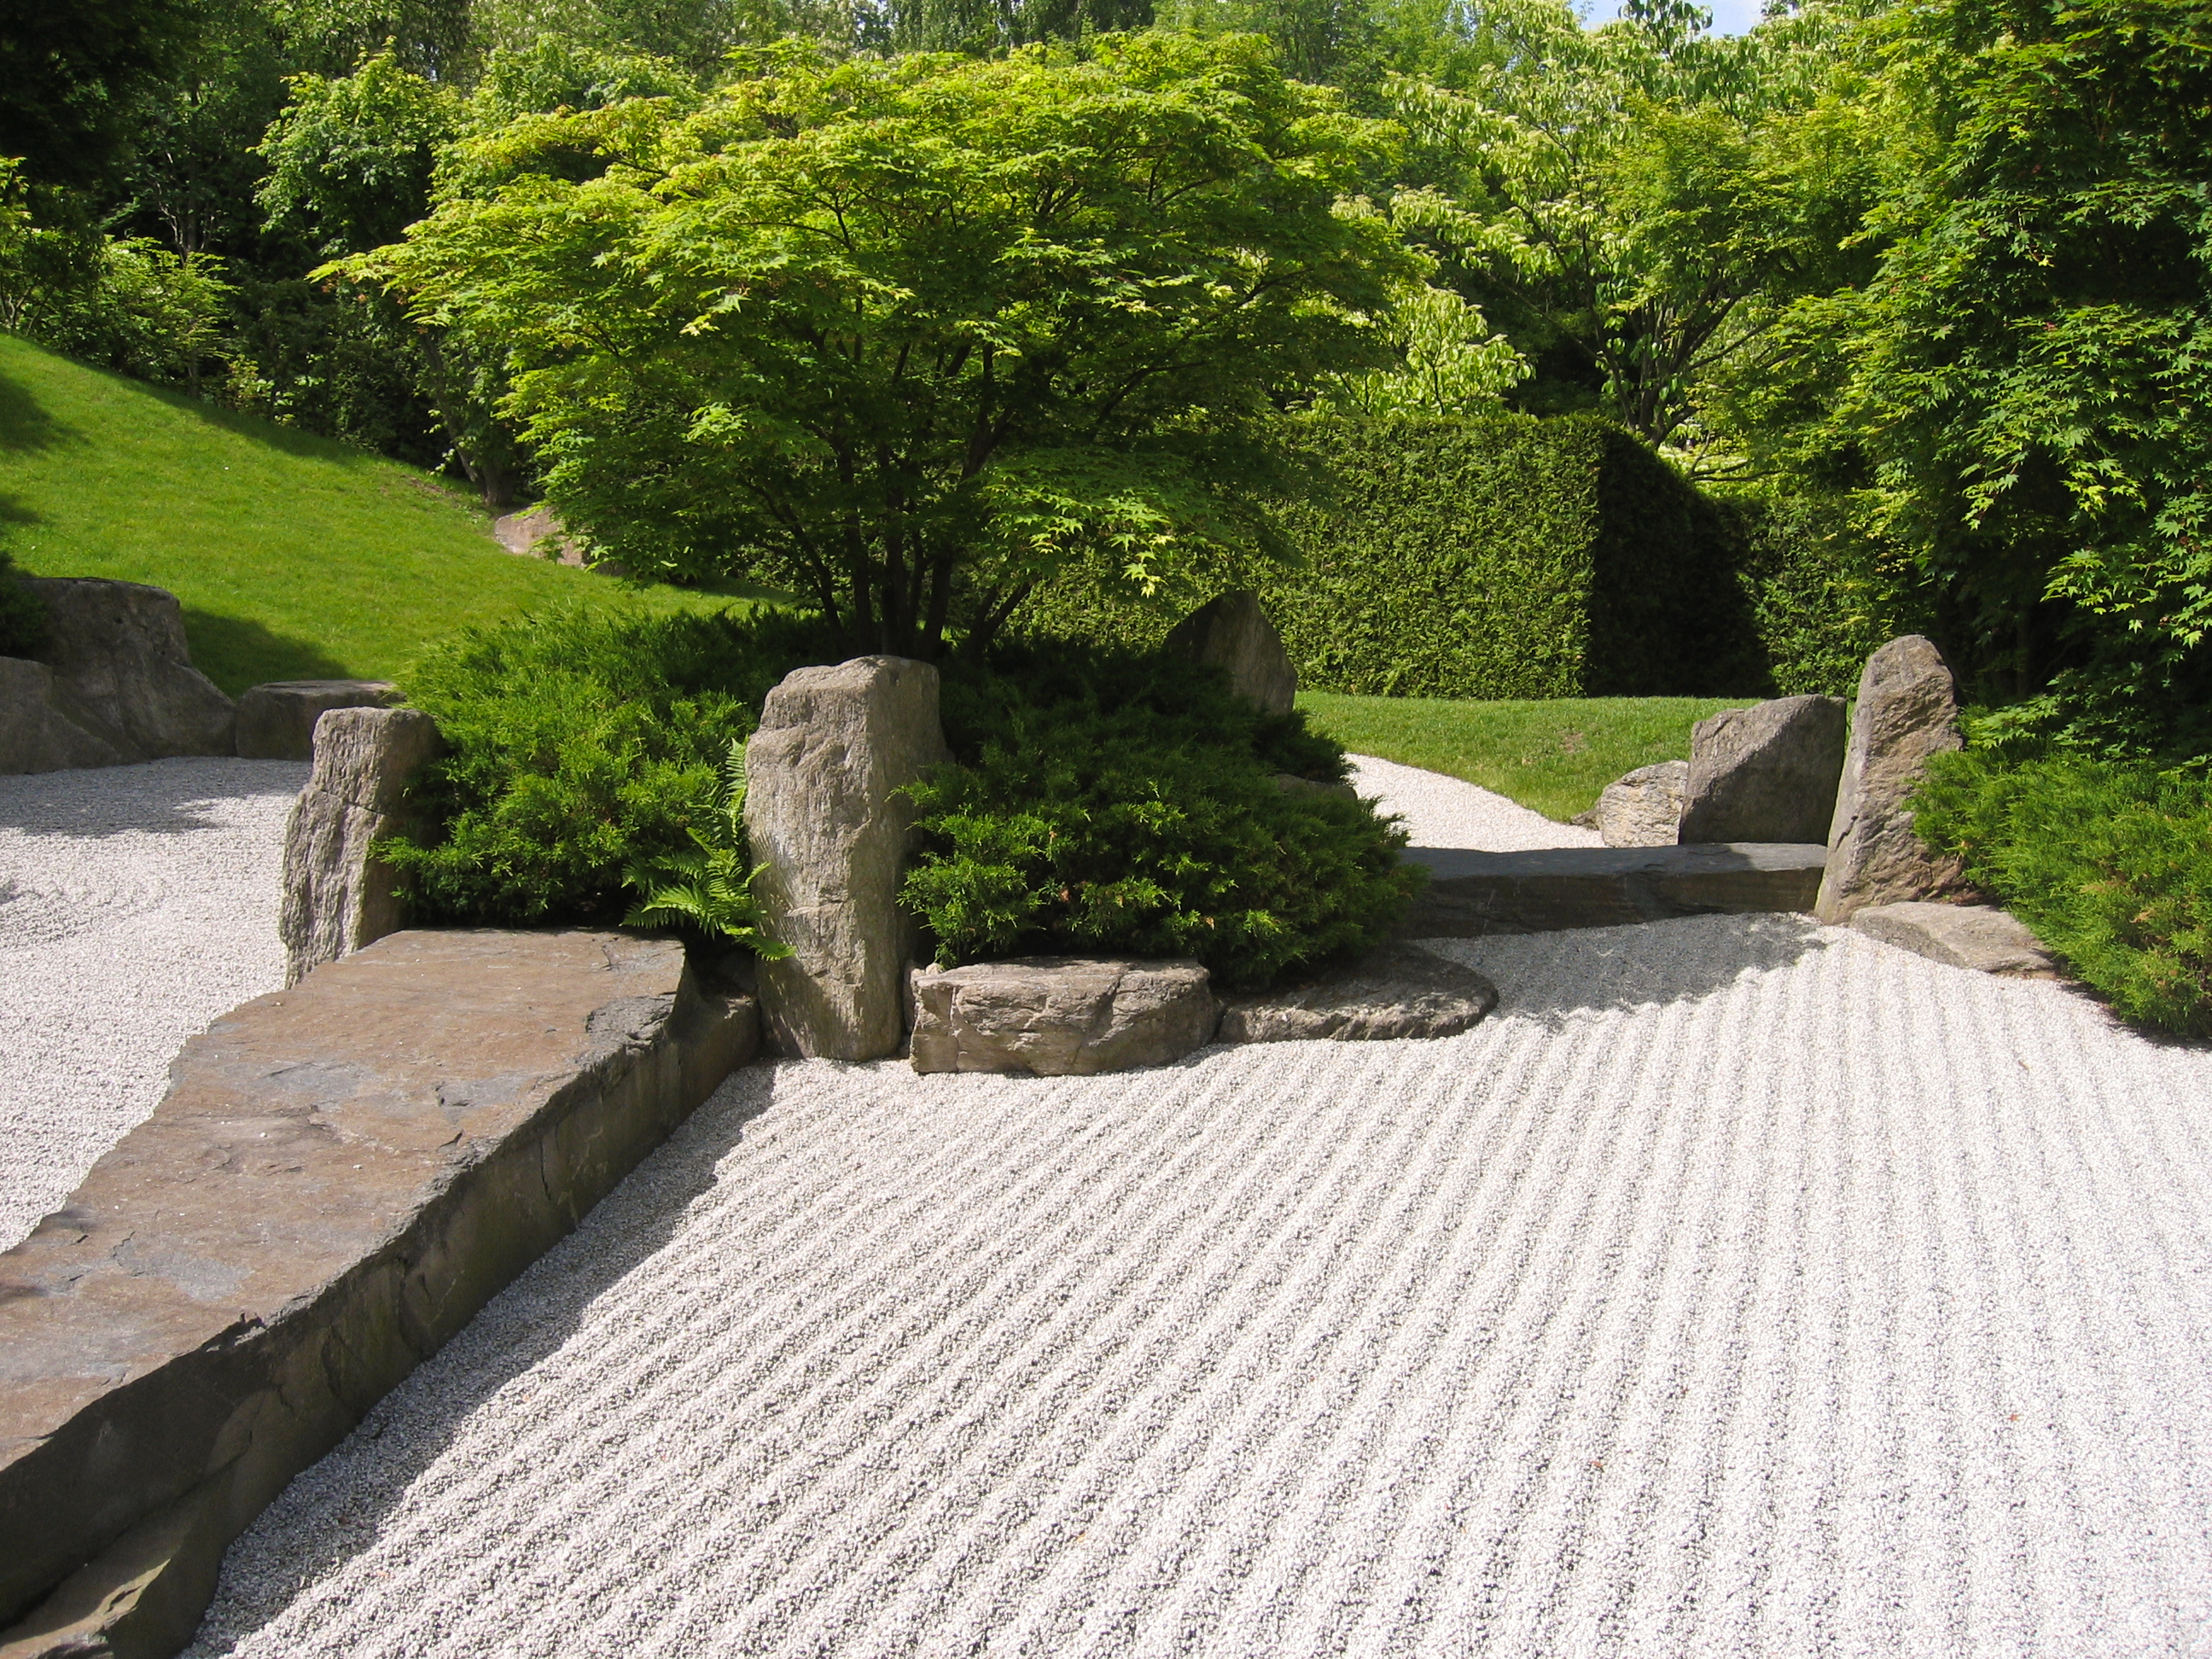 Garden design common garden stylesse landscape for Japanese garden design